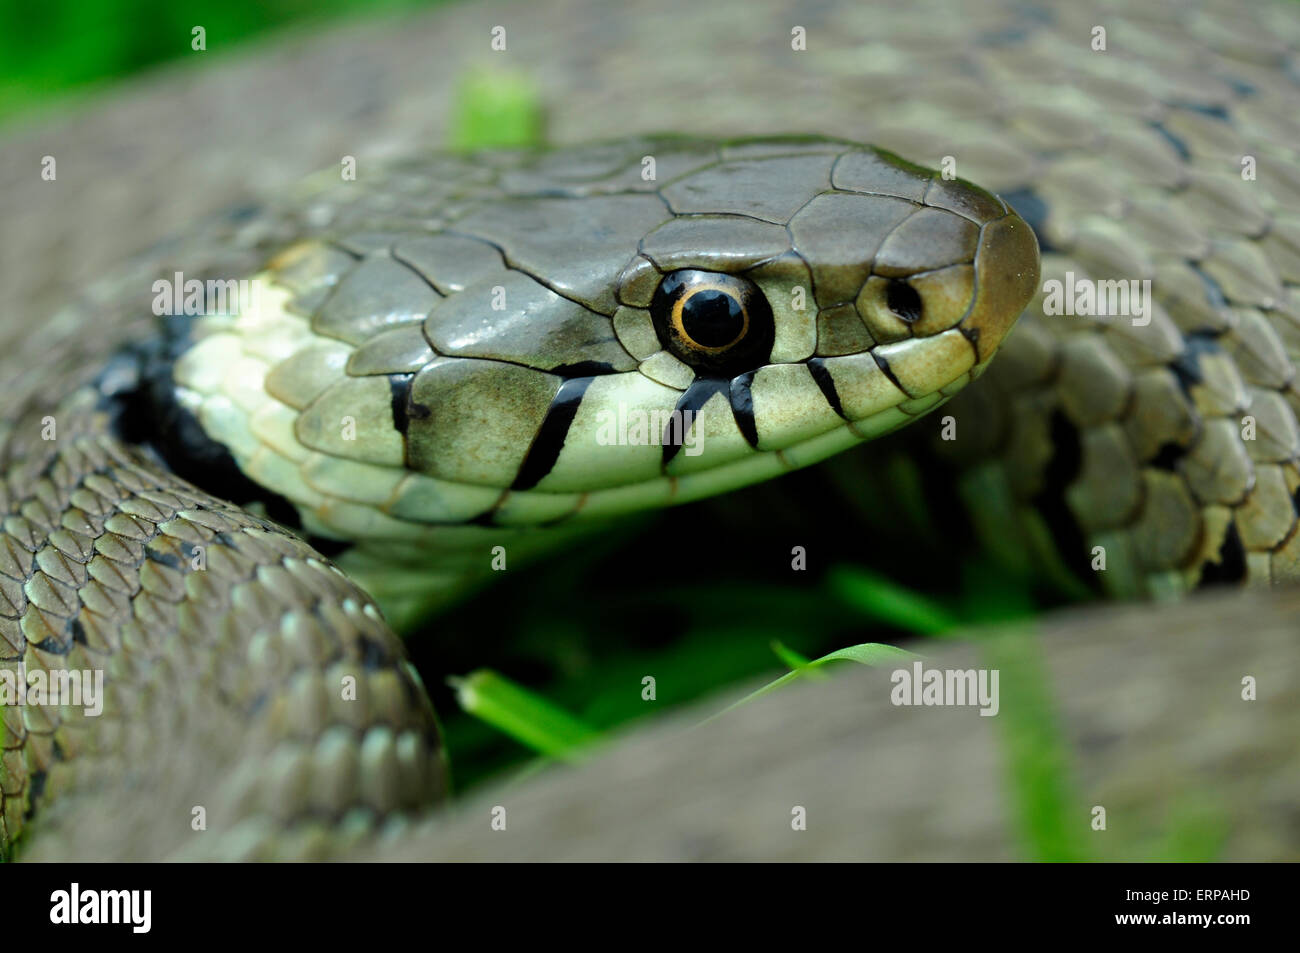 The face of a grass snake UK - Stock Image